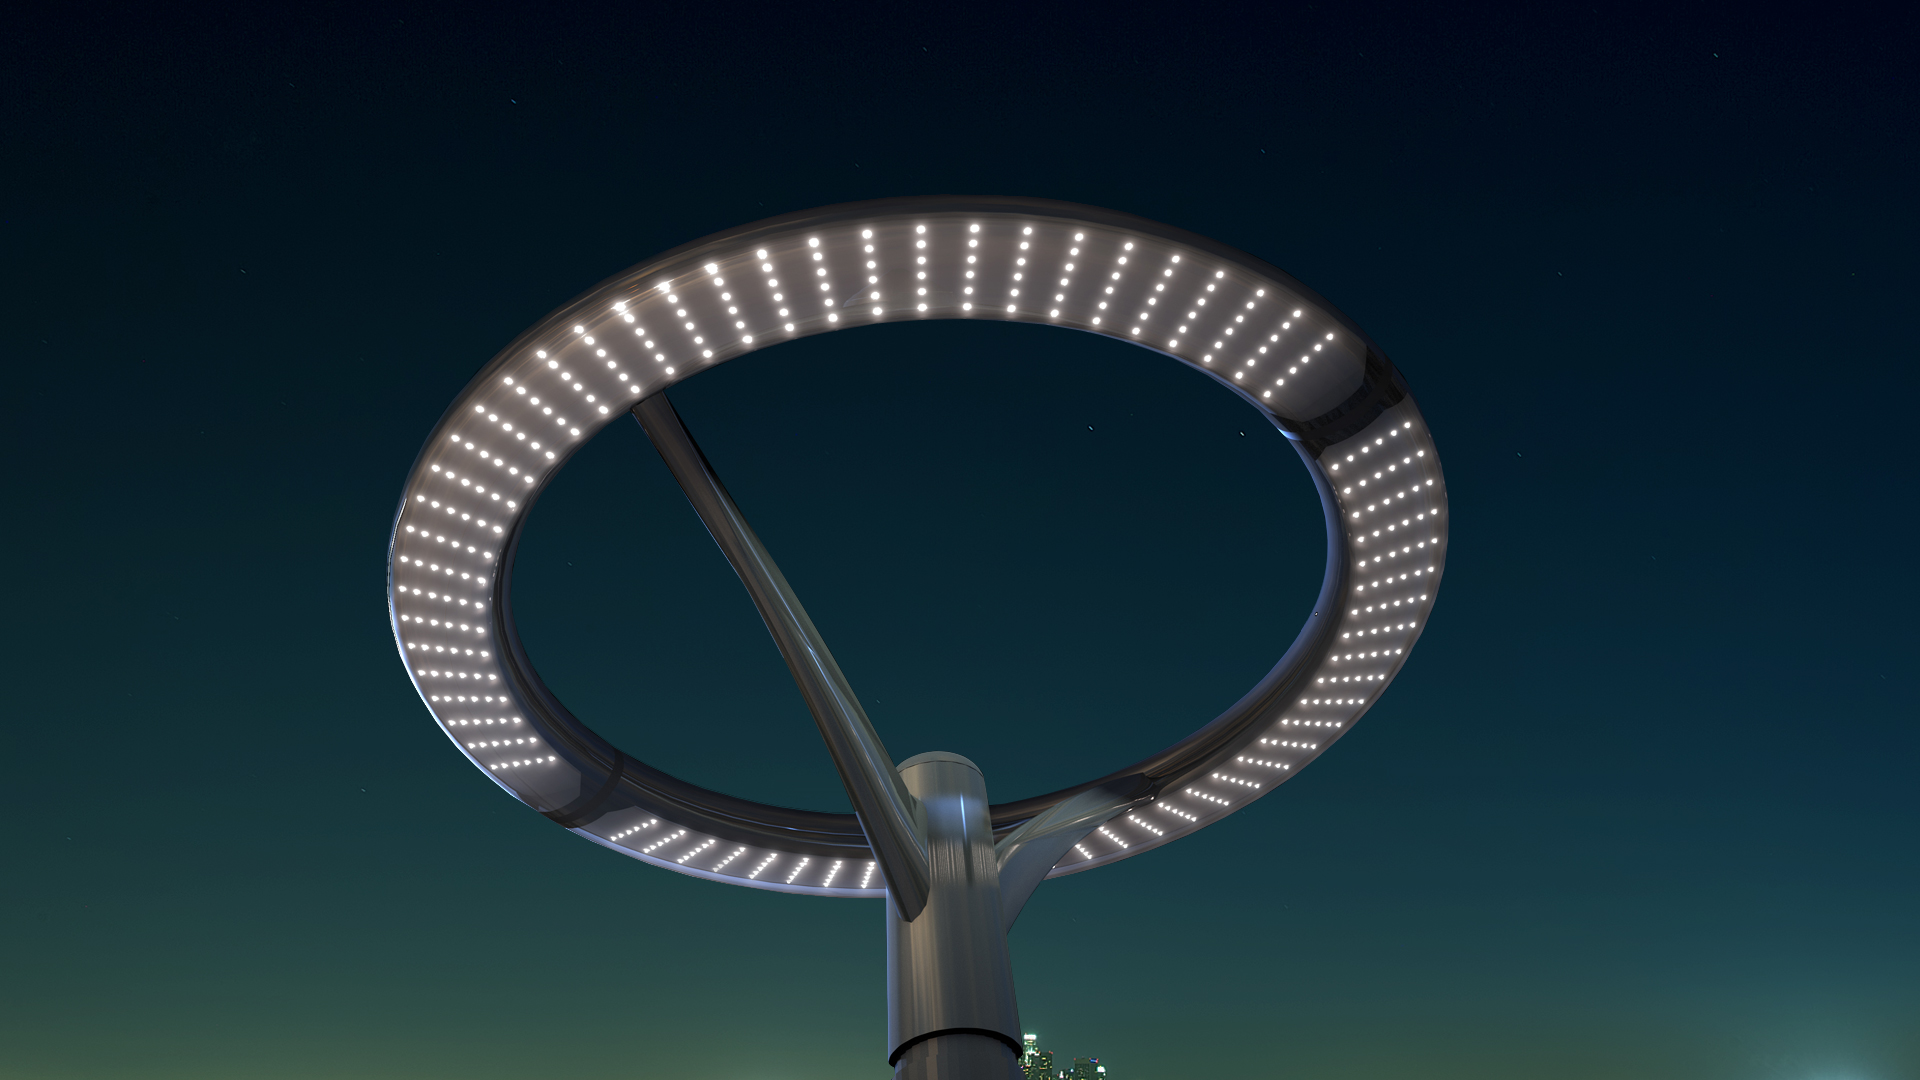 MAP-design-LED-streetlight-architecture-architect-kiran-mathema-halo-1